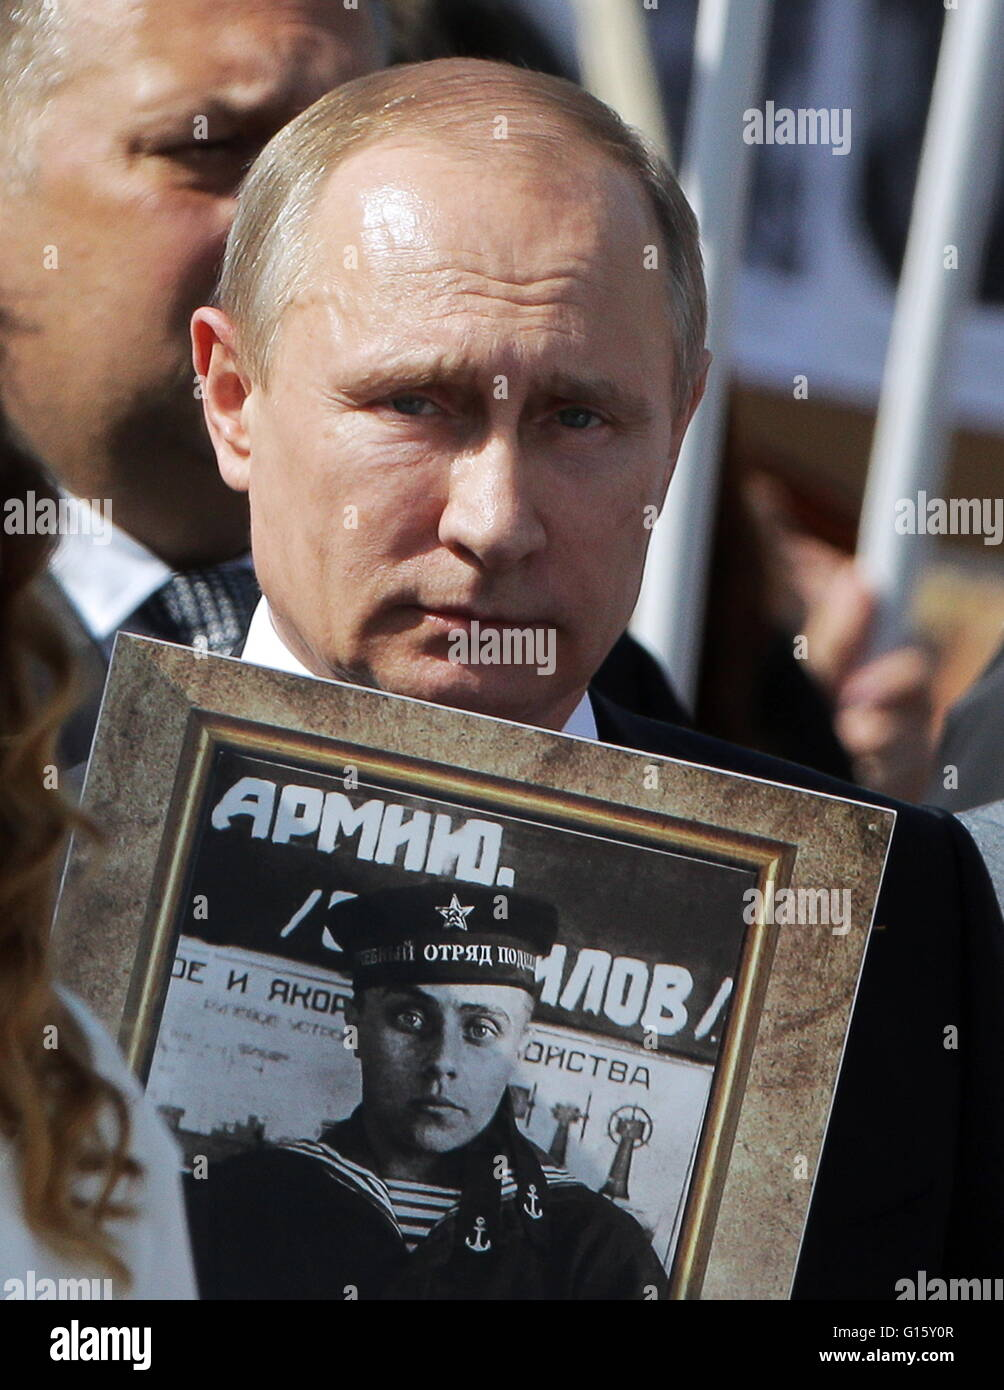 Moscow Russia 9th May 2016 Russia S President Vladimir Putin Stock Photo Alamy